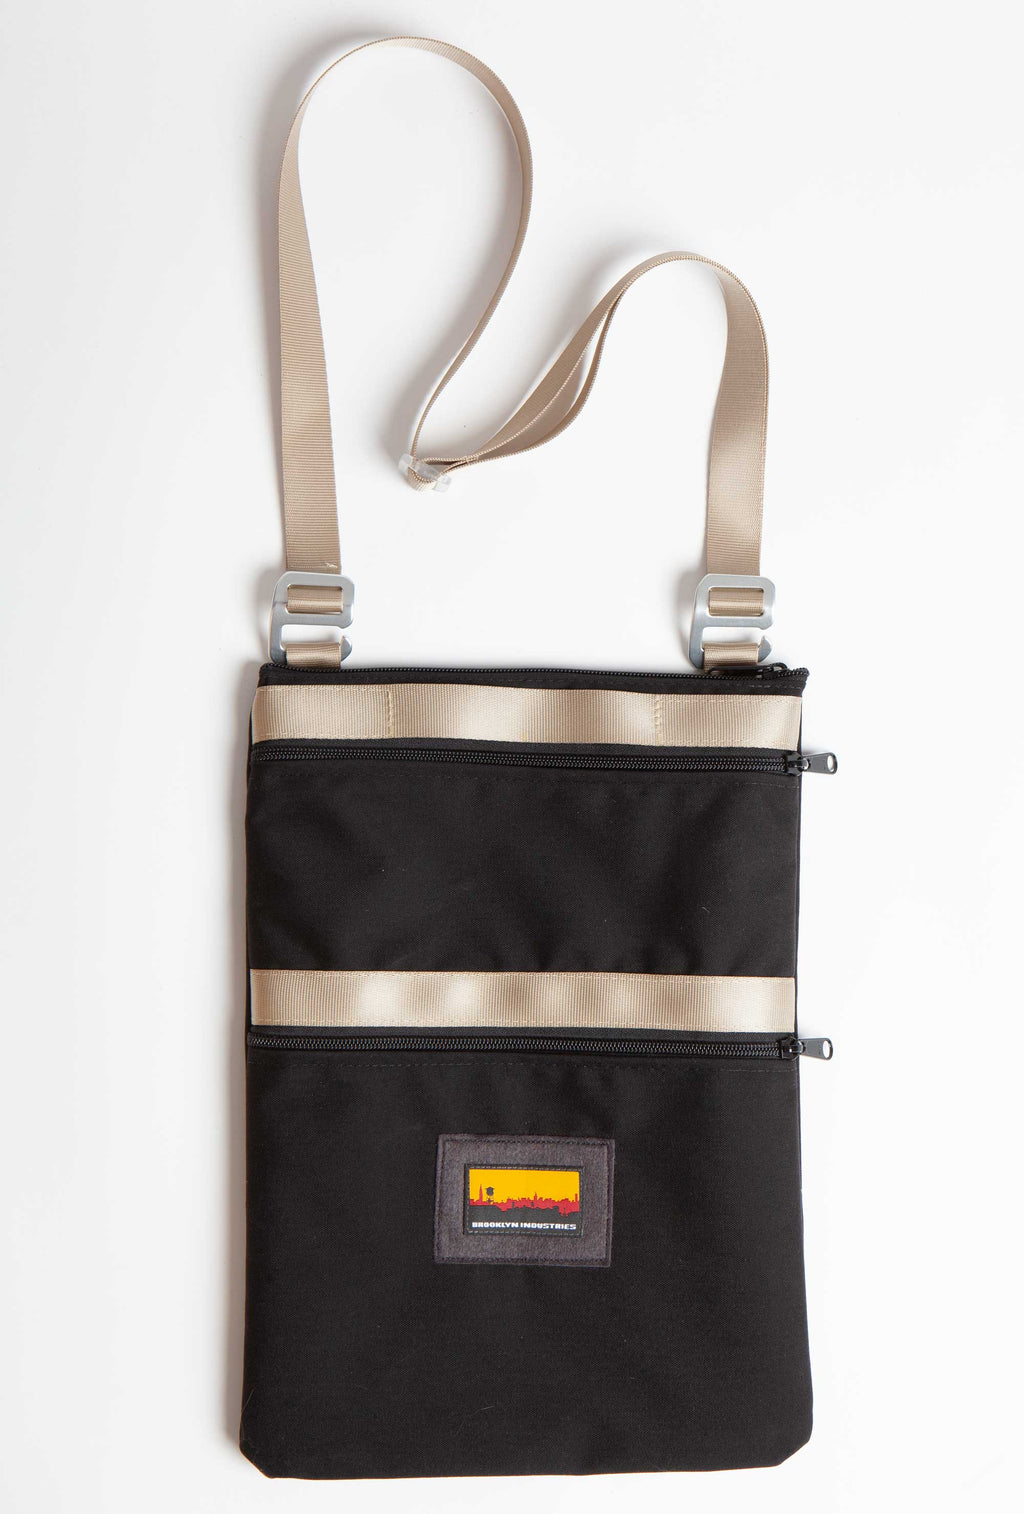 SMALL LAPTOP CARRIER BLACK - BROOKLYN INDUSTRIES